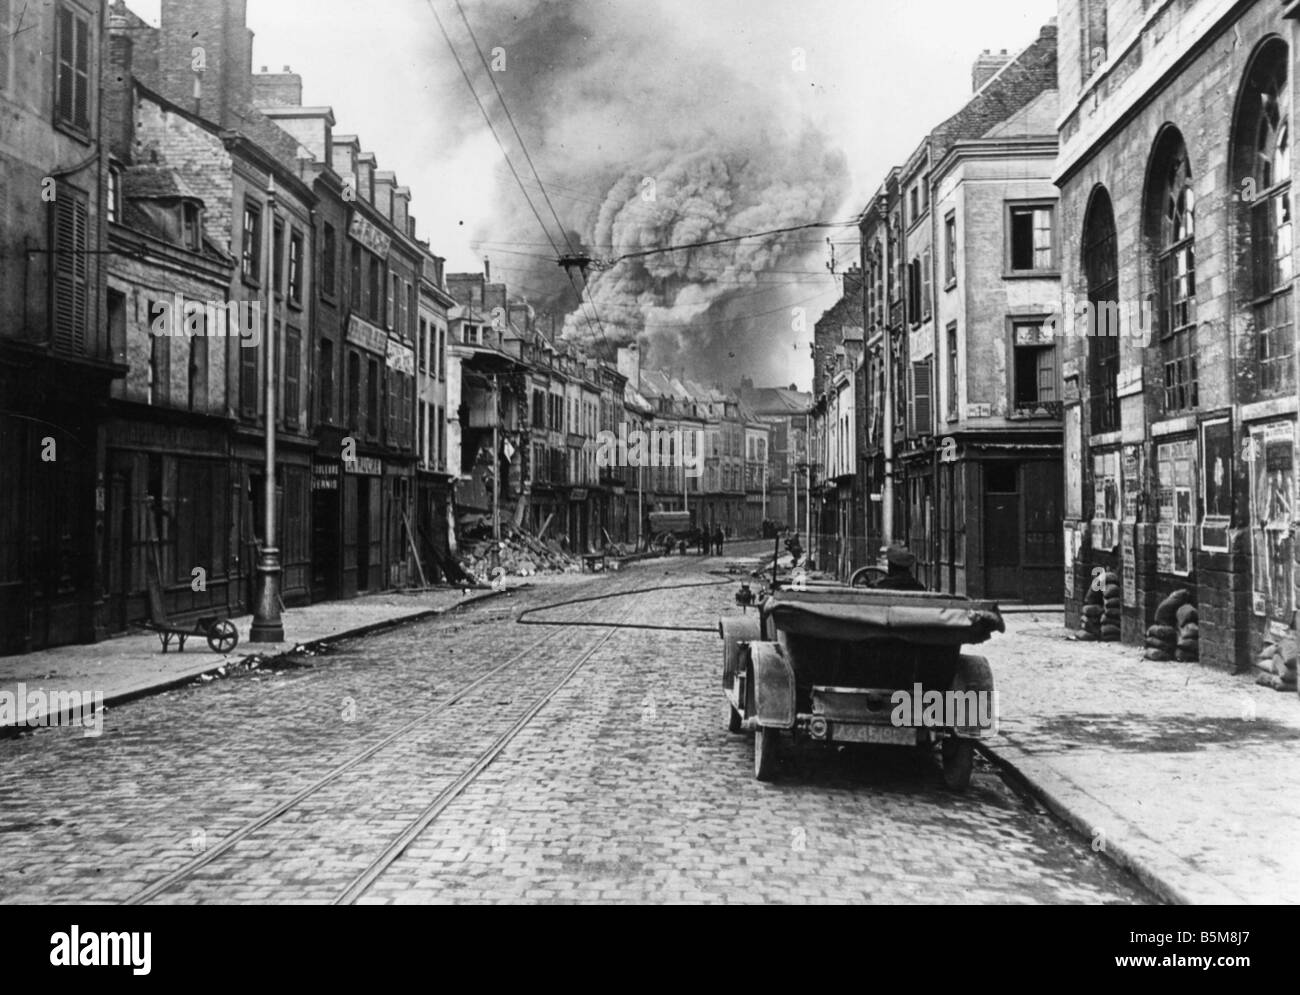 2 G55 F1 1918 9 Bombardment of Amiens WWI 1918 History World War I France Battle of Amiens March April 1918 A fire - Stock Image